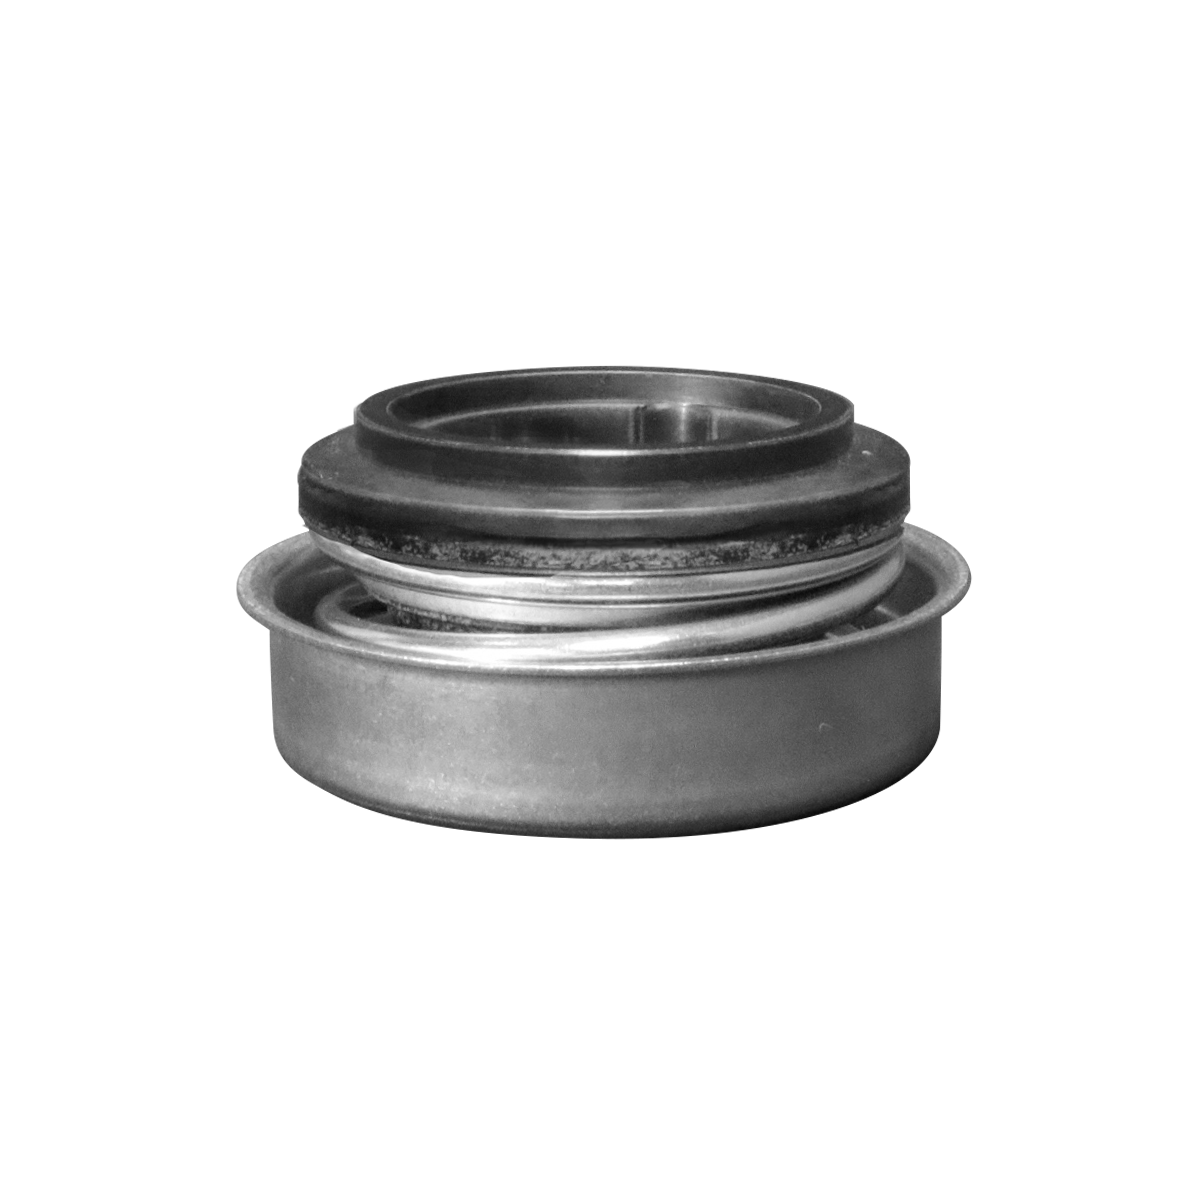 Thomson Type 6a Component Seal